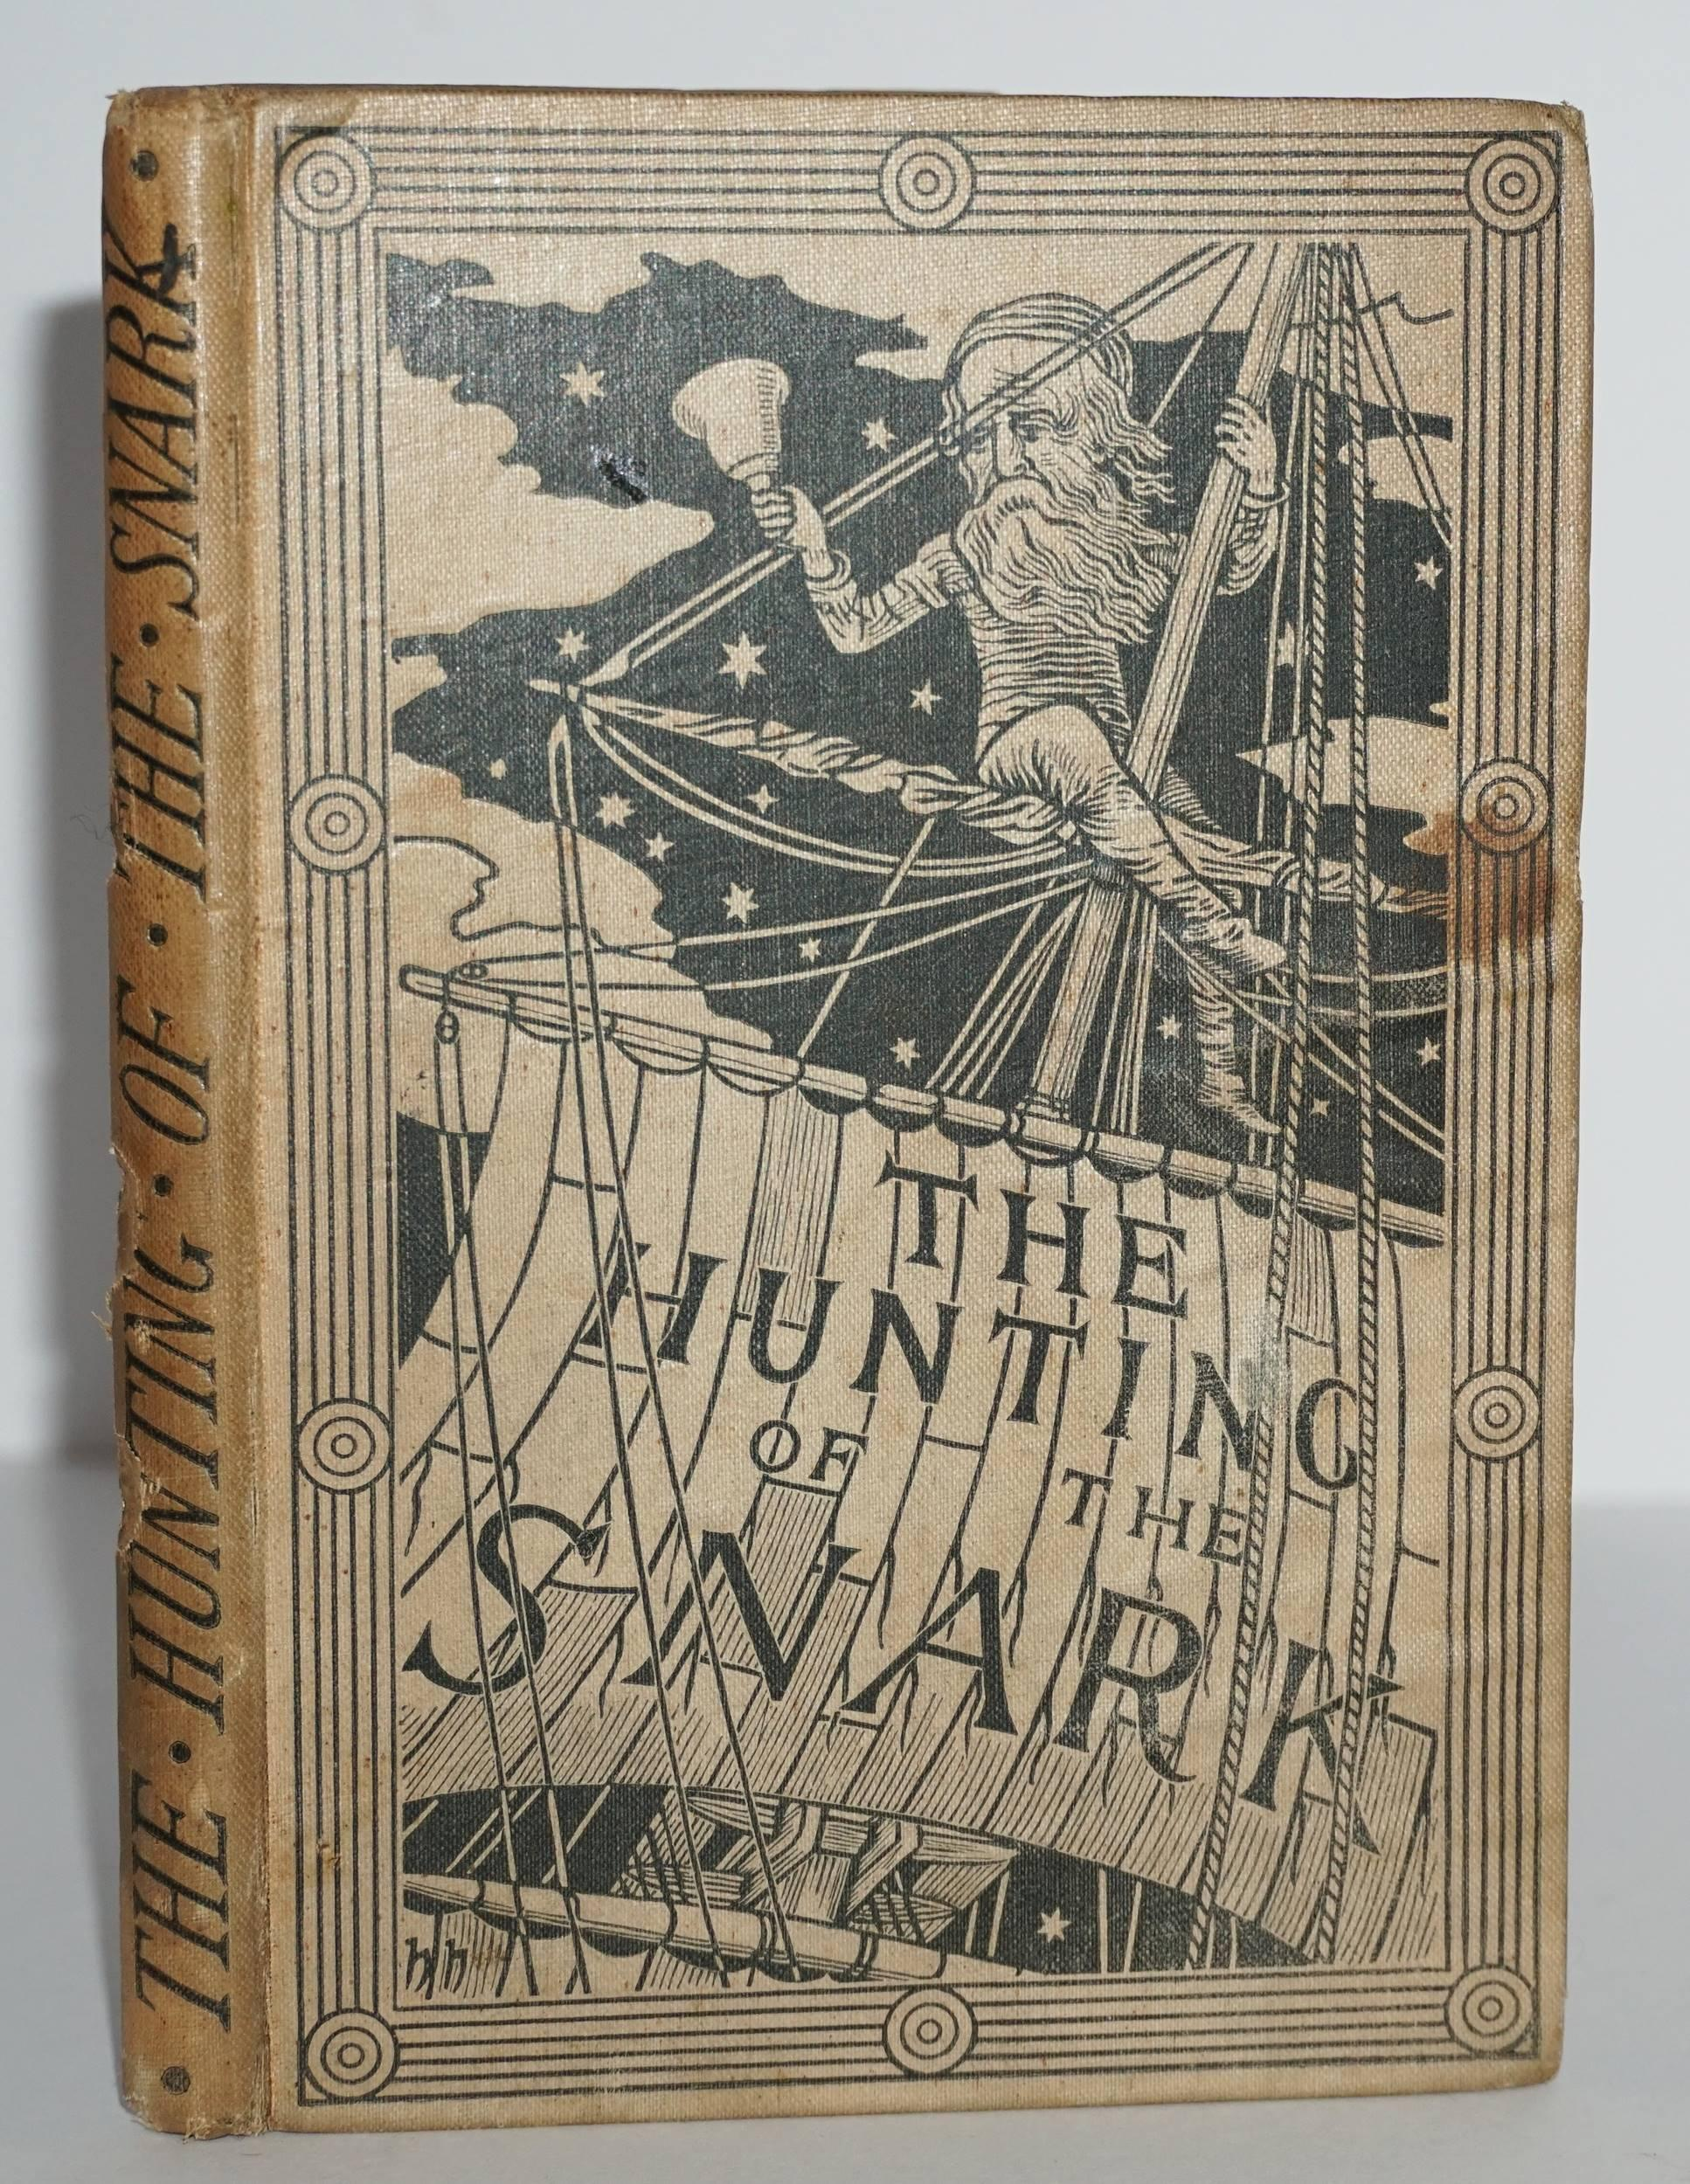 Lewis Carroll, The Hunting of the Snark, First UK Printing